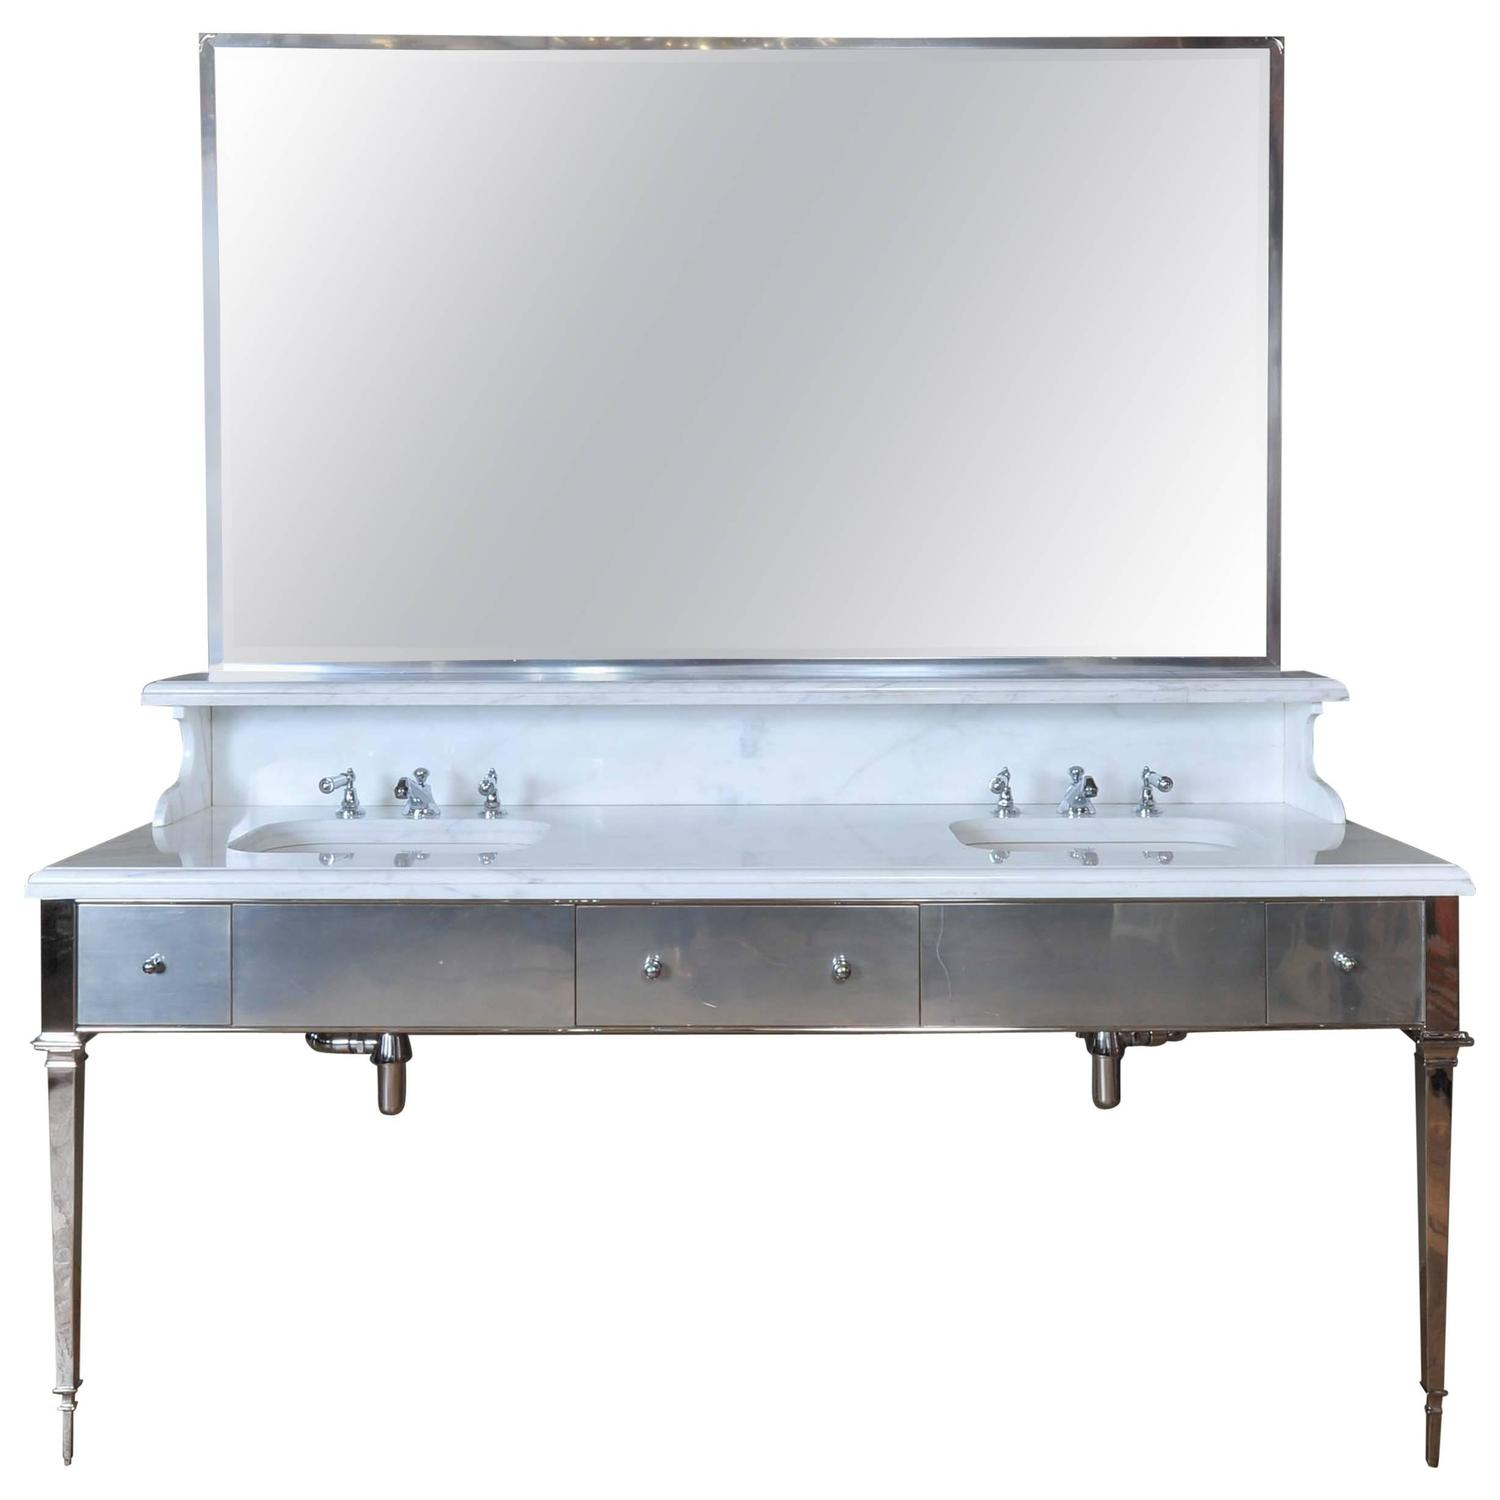 Deco Style Marble And Chrome Double Sink Washstand At 1stdibs: double sink washstand